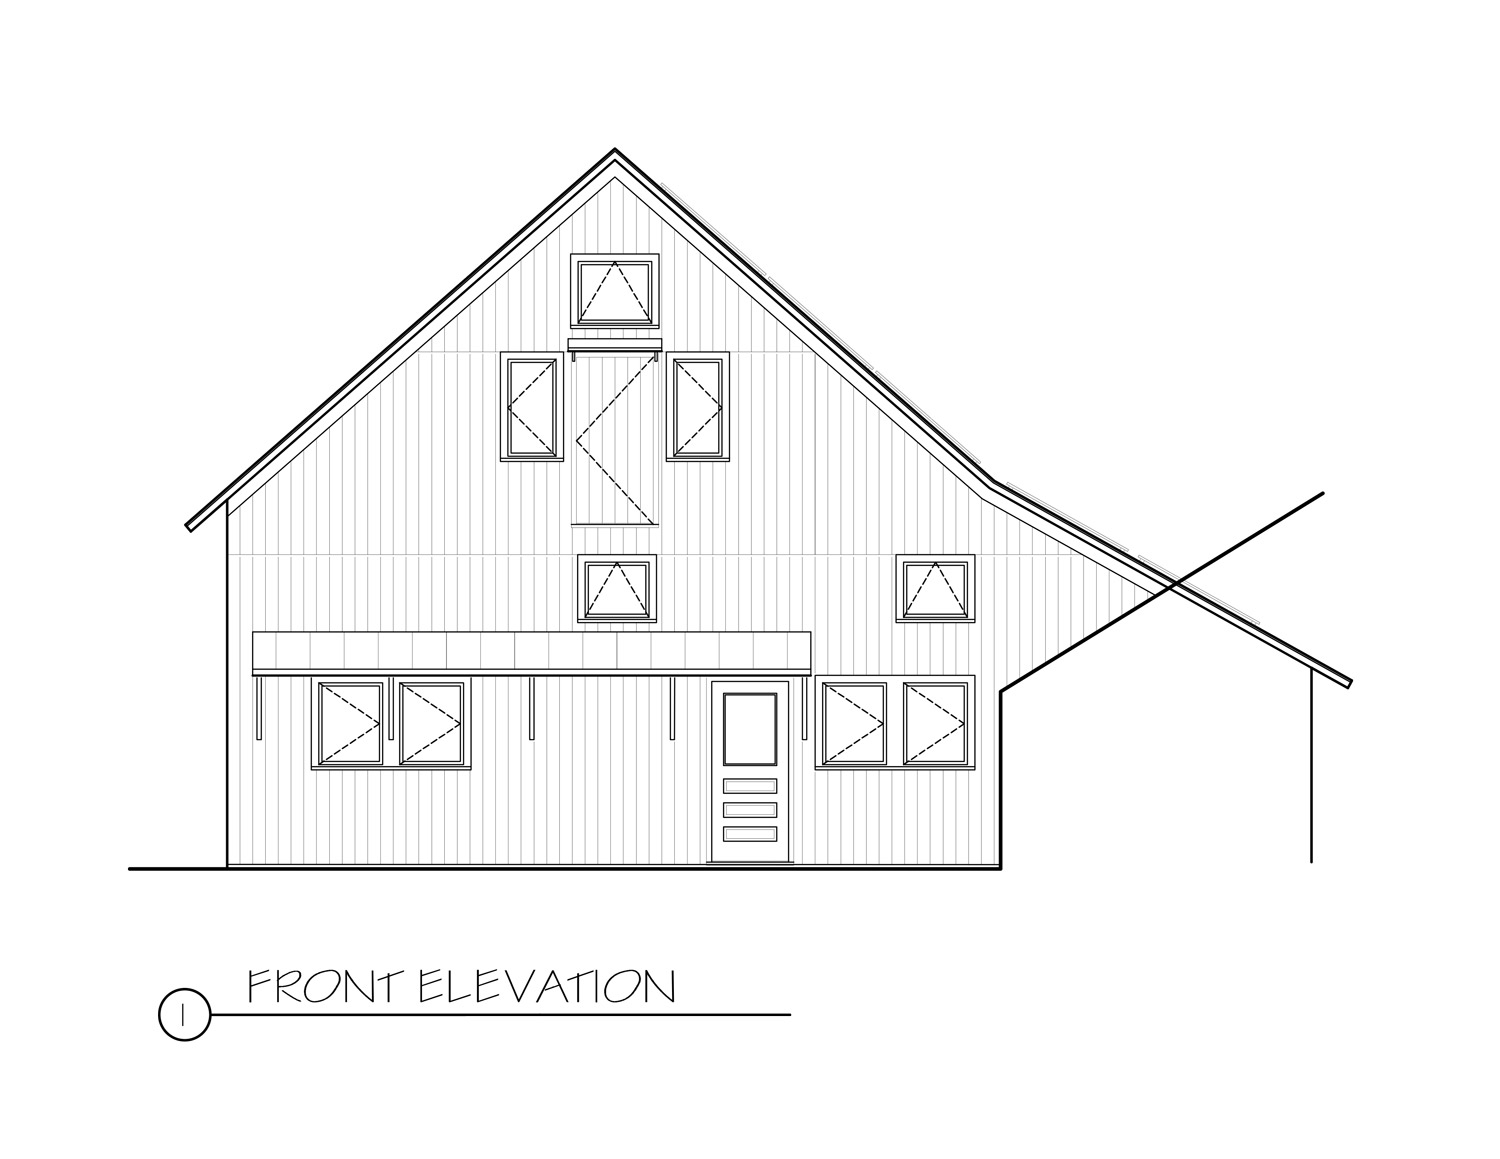 Front-Elevation.upload.jpg